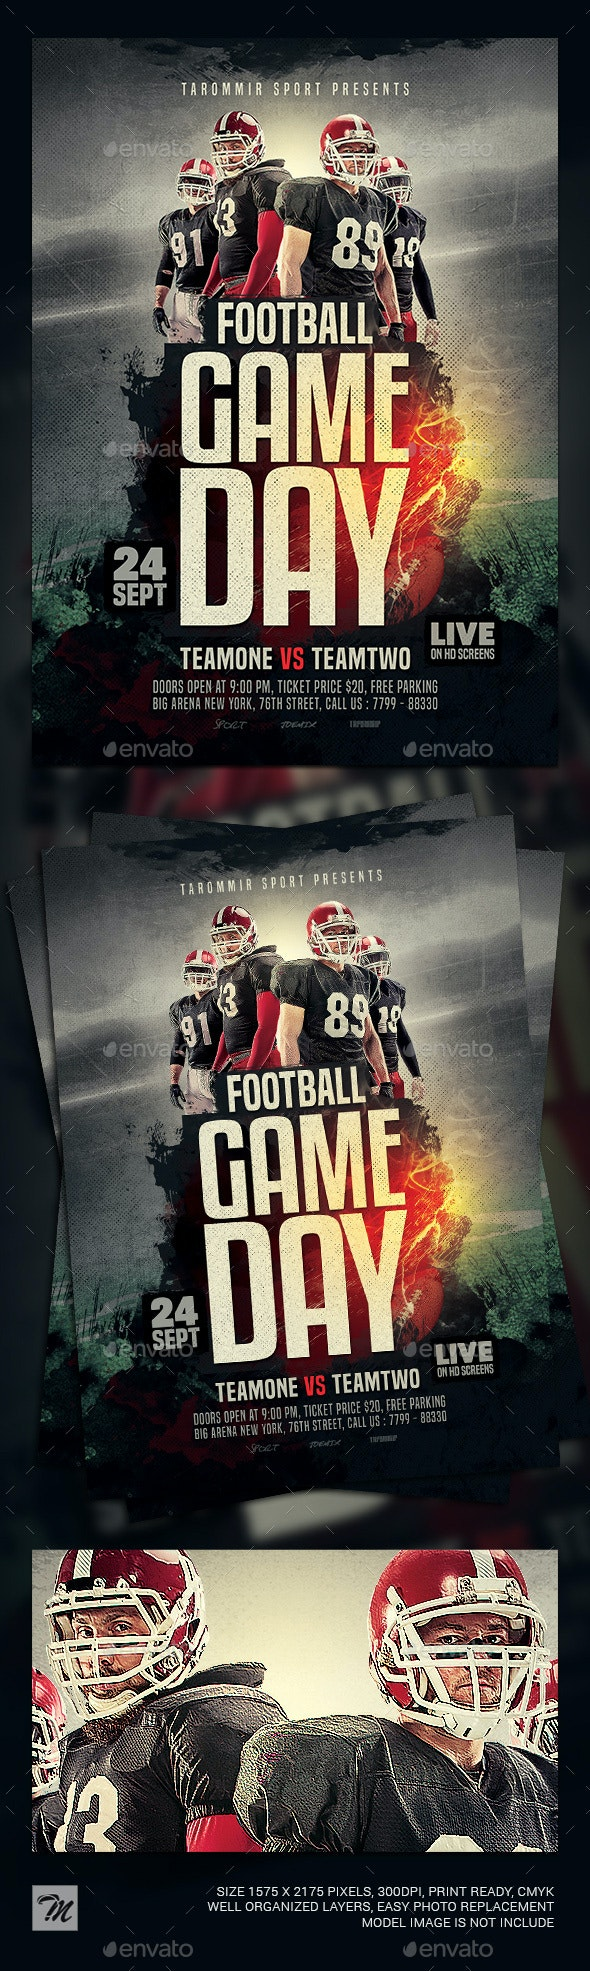 Football Game Day Flyer - Sports Events